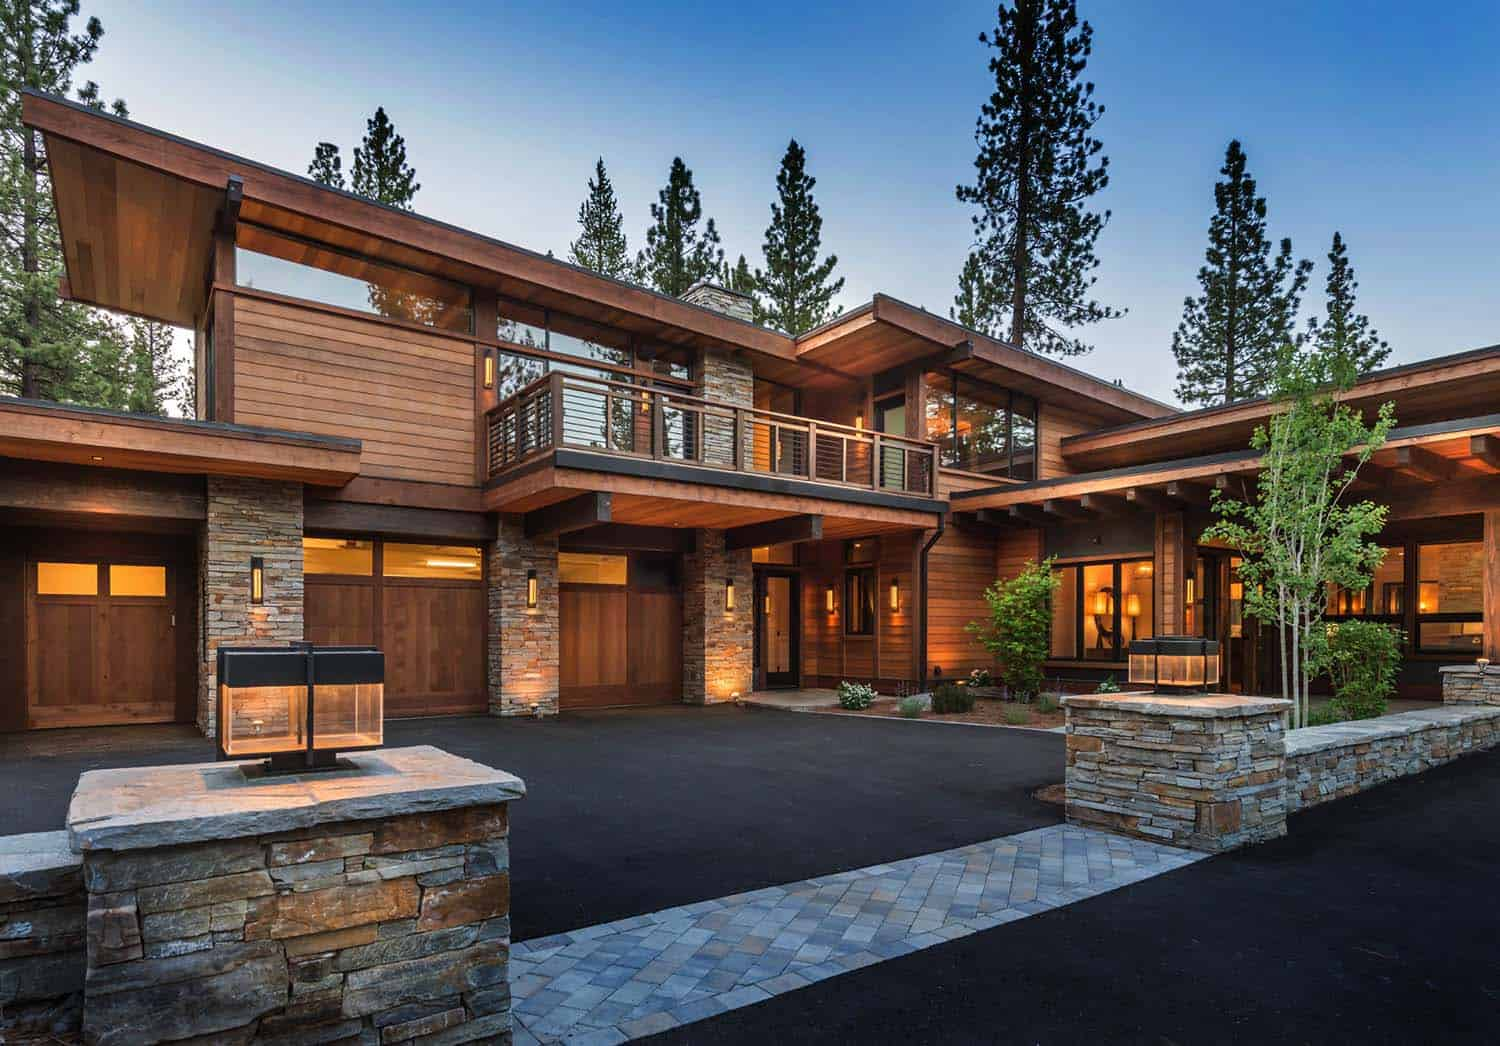 Mountain modern home in martis camp with indoor outdoor living for Modern rustic home plans